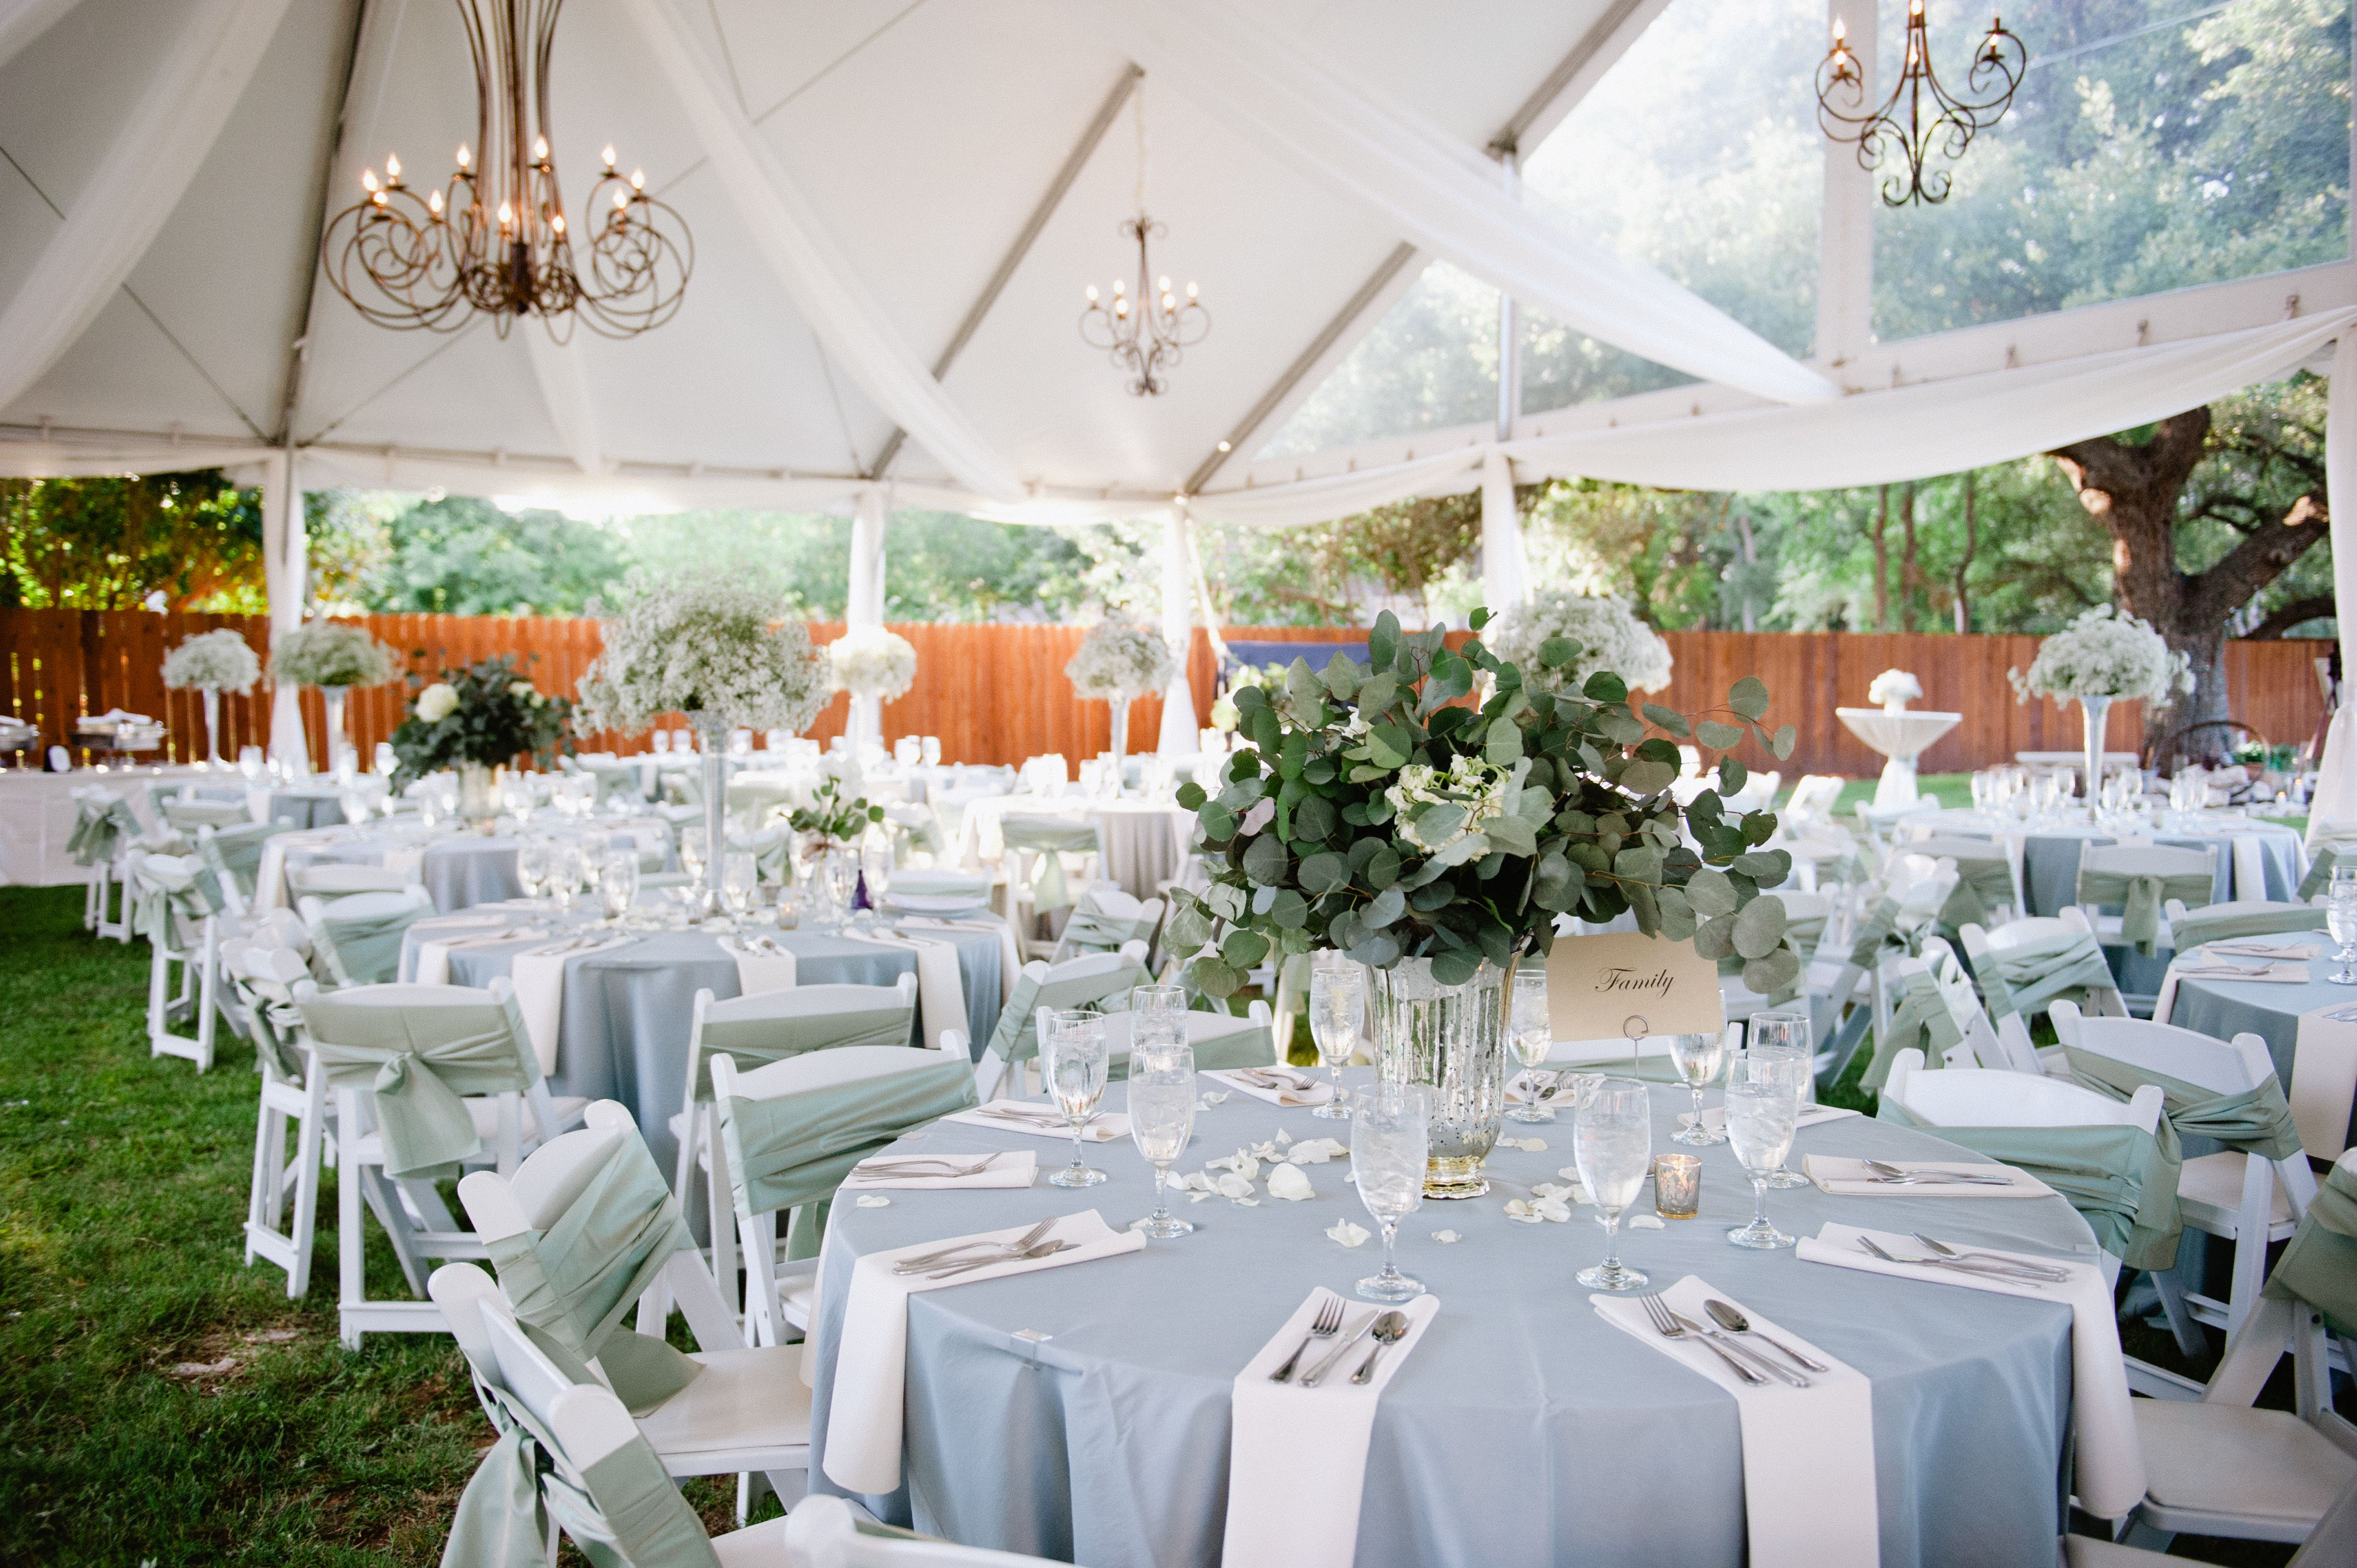 Mint Color Outdoor Ceremony Decorations: Pin By Sheri Robinson On Bridal Shower Ideas In 2019